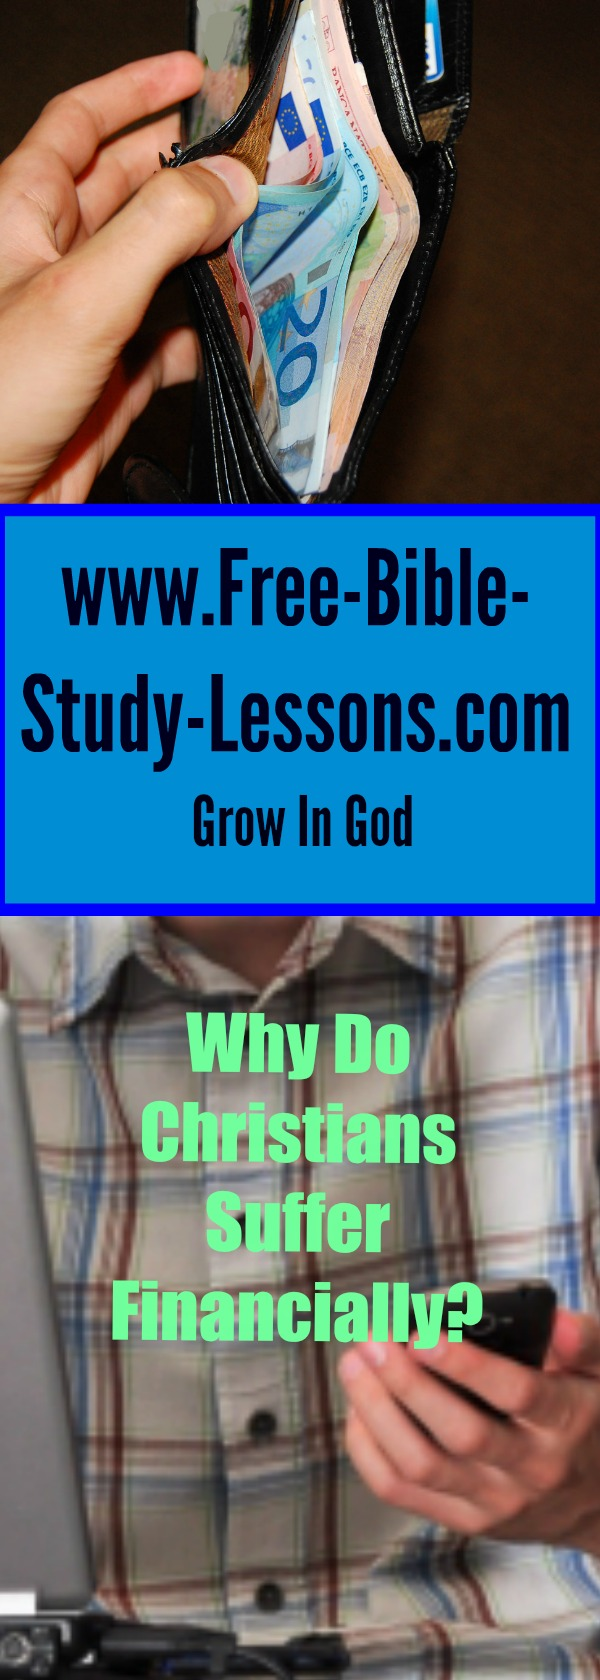 Since God is love and knows our every need and desire why is it that many Christians suffer financially?